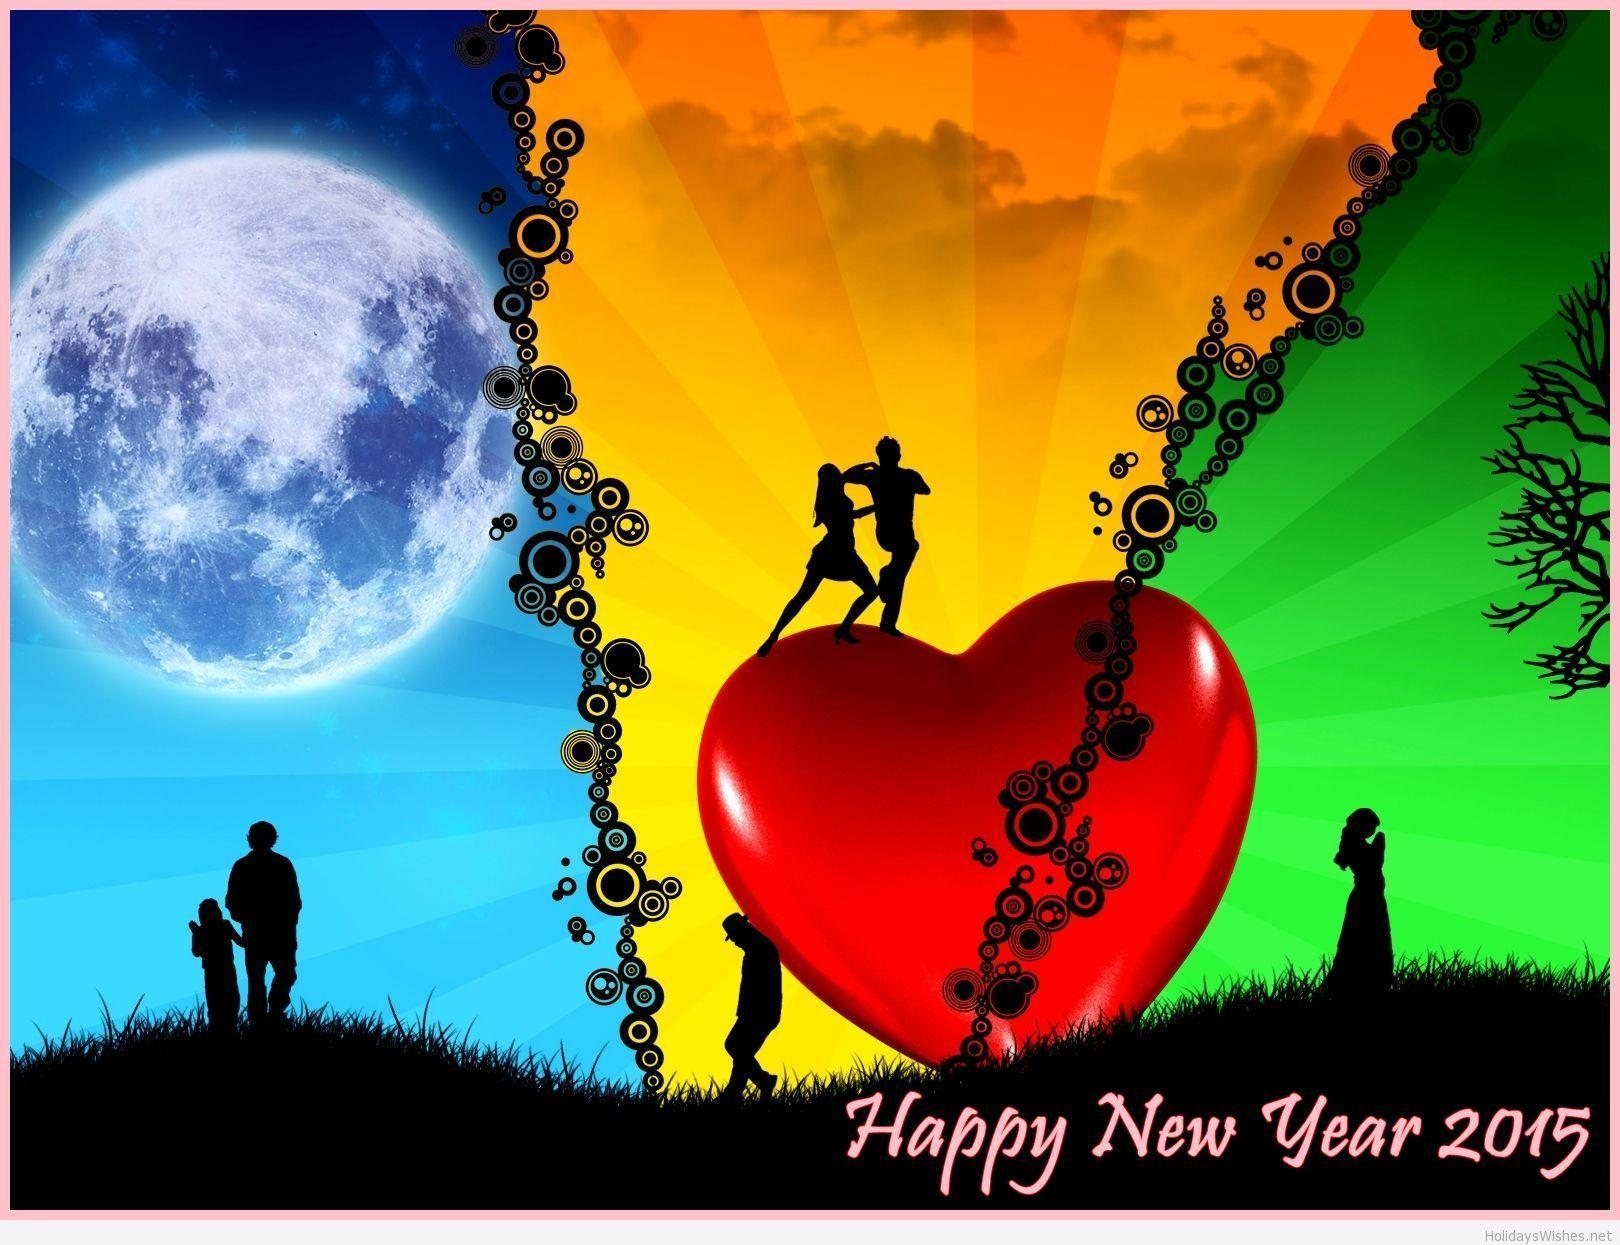 Love Wallpapers New 2015 : New Love Image Wallpapers 2015 - Wallpaper cave